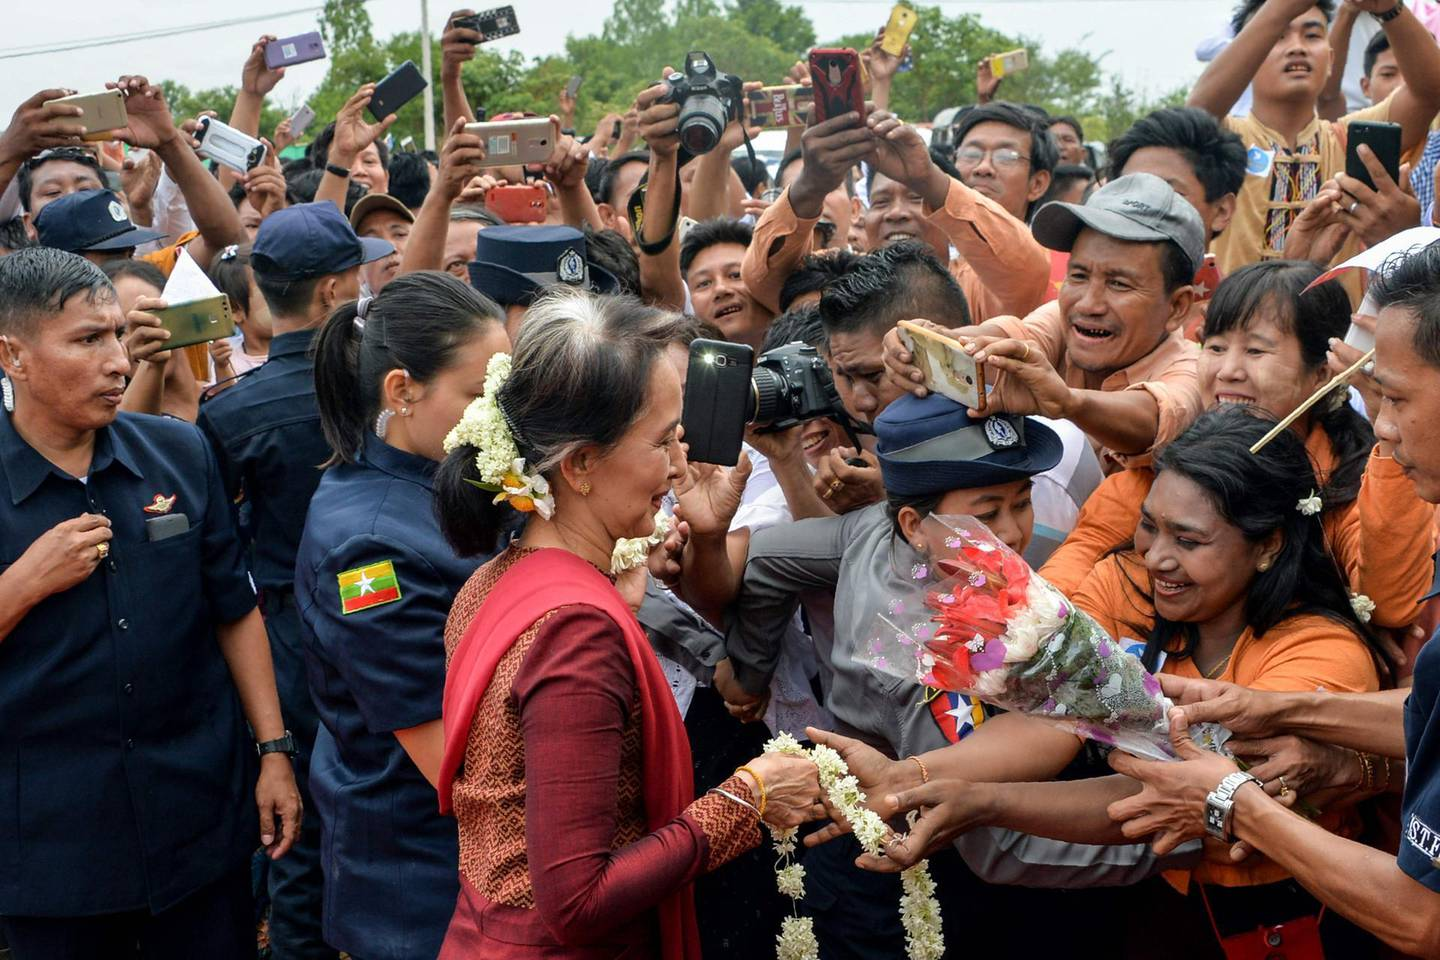 Myanmar's State Counselor and Foreign Minister Aung San Suu Kyi (C) meets with her suppoters during a peace talk conference in Chauk Kan village, Pakokku in Mgway Division on August 9, 2018. (Photo by THET AUNG / AFP)